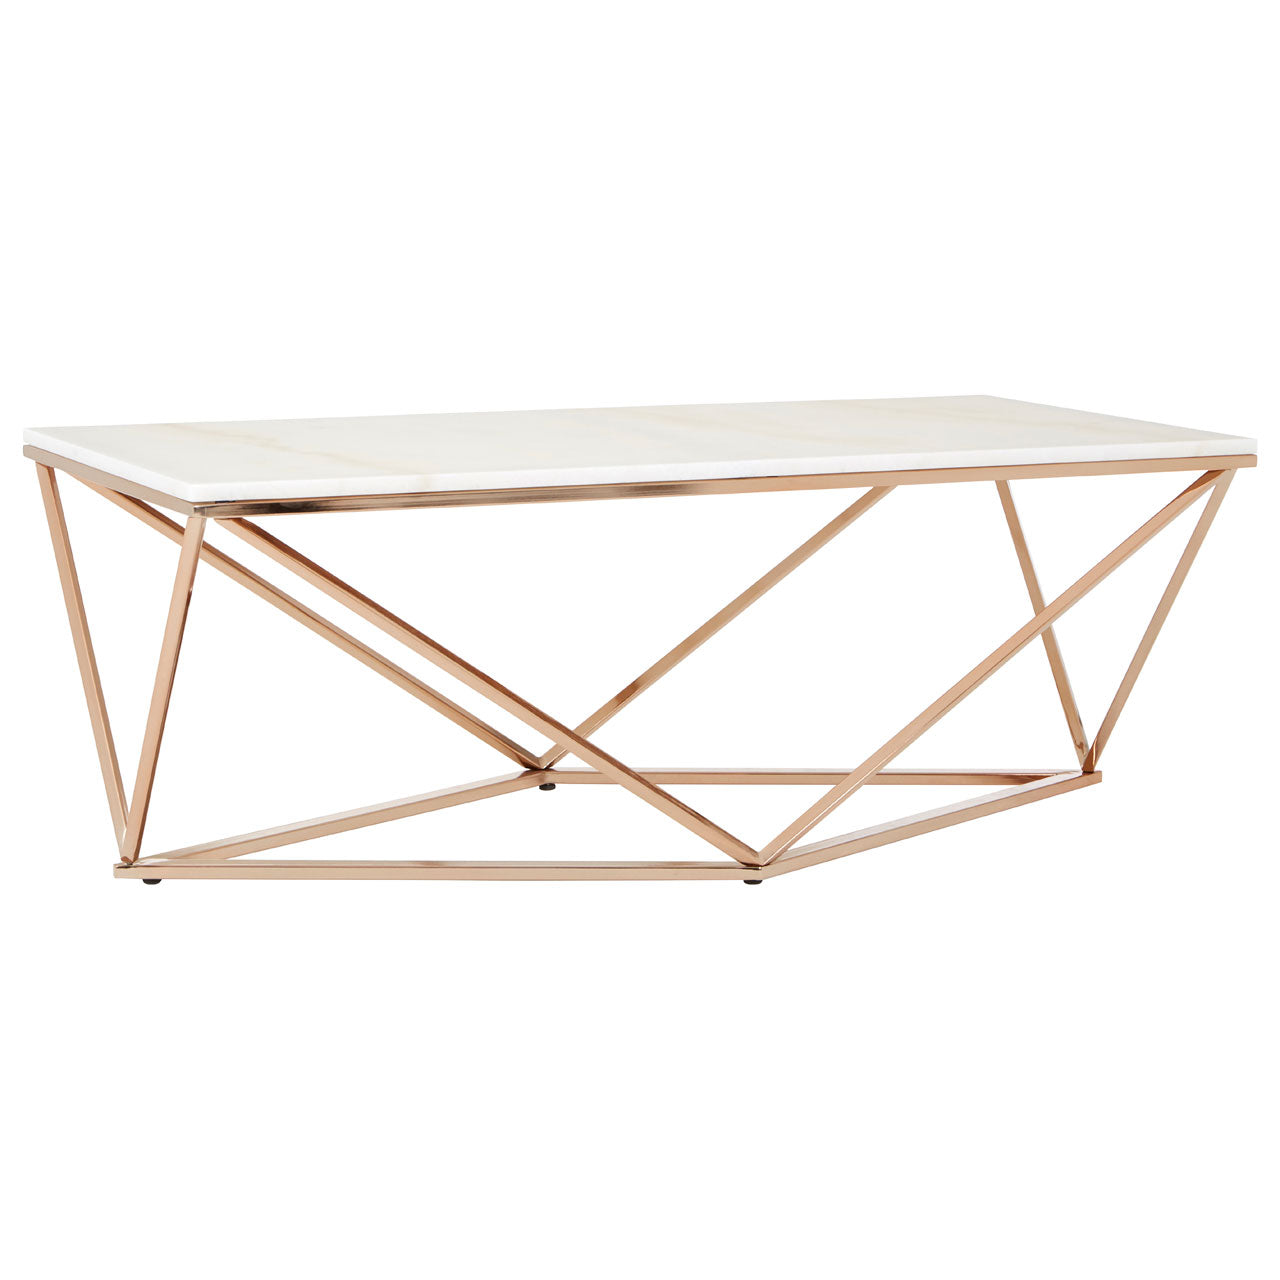 Gold And White Marble Coffee Table.Allure Rectangular Coffee Table Champagne Gold With White Marble